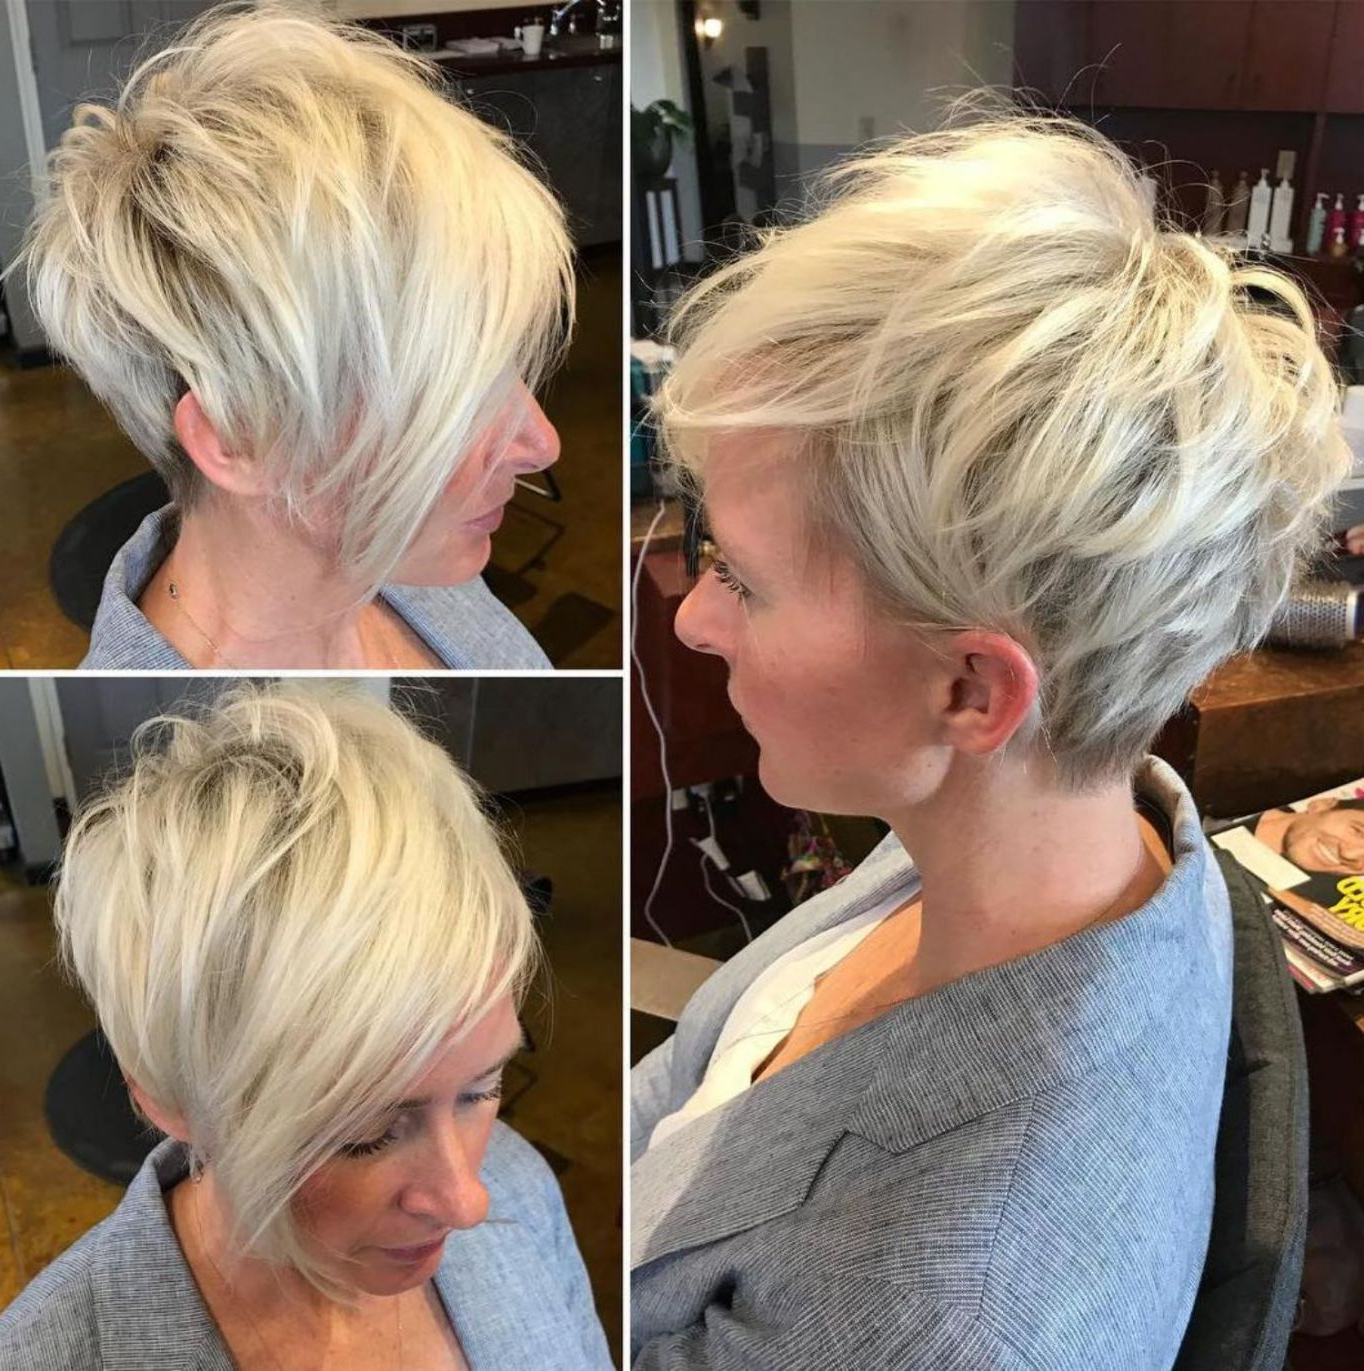 60 Gorgeous Long Pixie Hairstyles In 2018 | Short Pixie | Pinterest With Regard To Messy Asymmetrical Pixie Bob Haircuts (View 12 of 20)